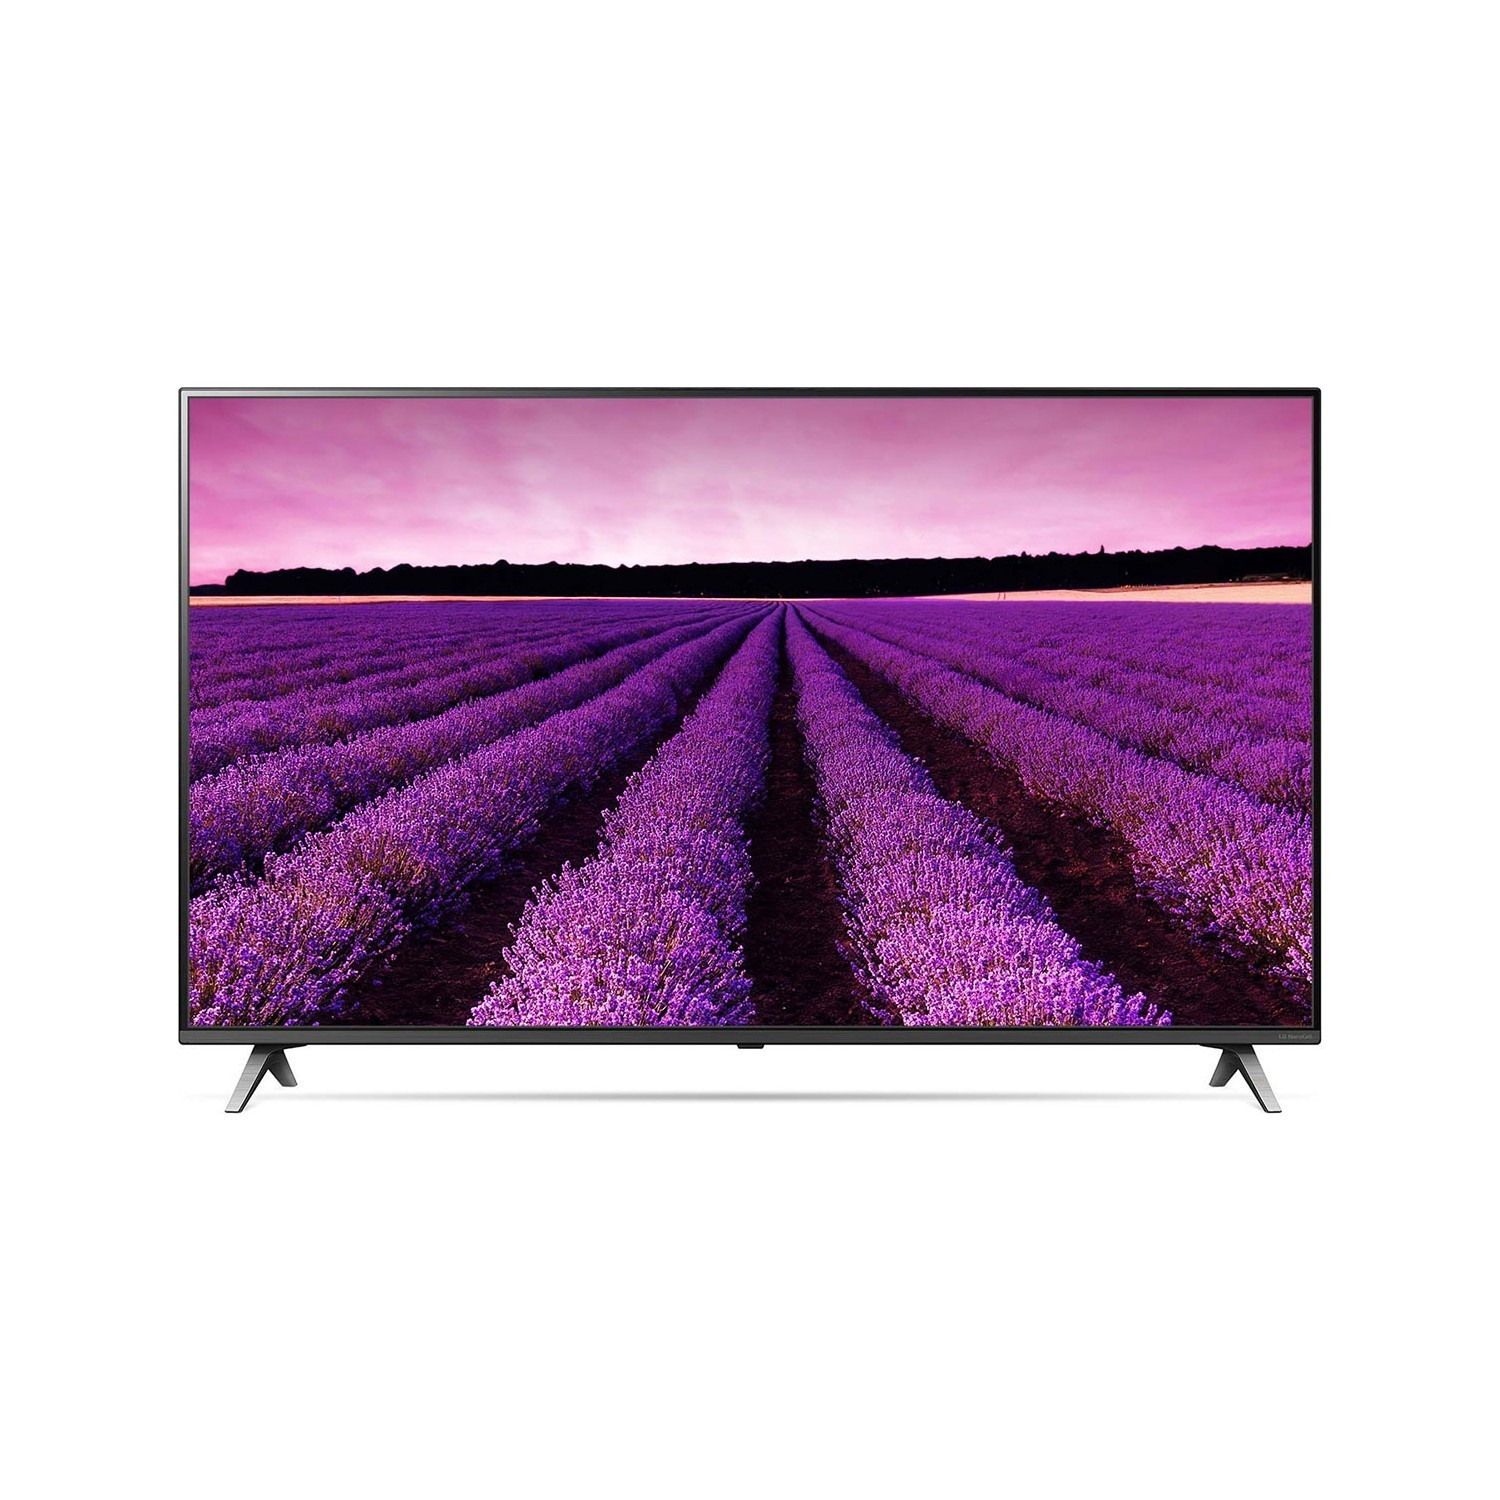 Lot 16015 - + VAT Grade A LG 49 Inch ACTIVE HDR 4K SUPER ULTRA HD NANO LED SMART TV WITH FREEVIEW HD & WEBOS &